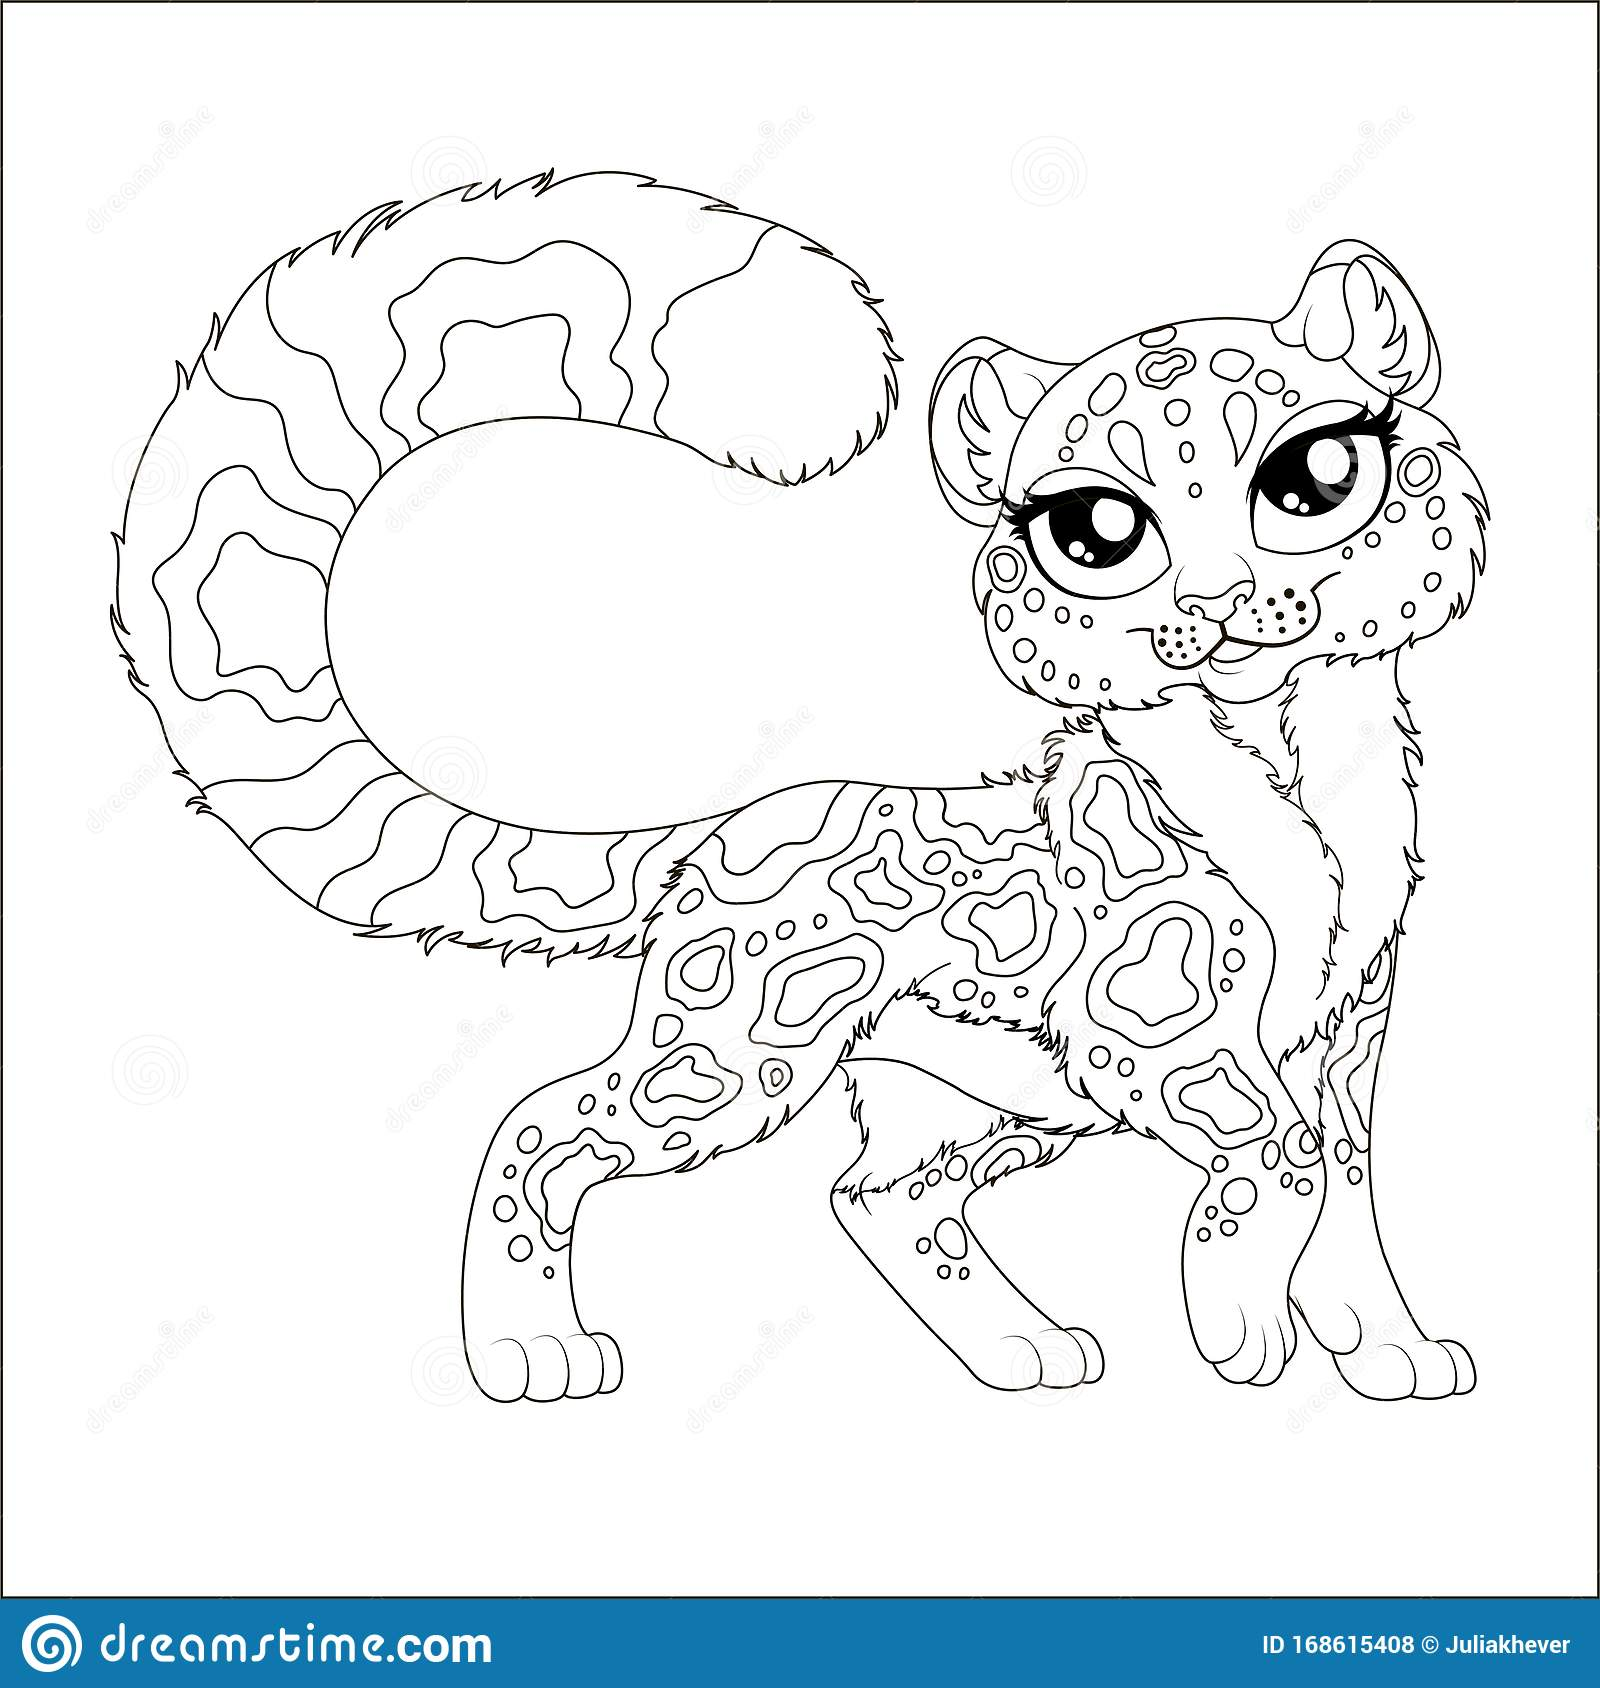 Coloring Page For Kids With Charming Cartoon Irbis Stock Vector Illustration Of Book Colour 168615408